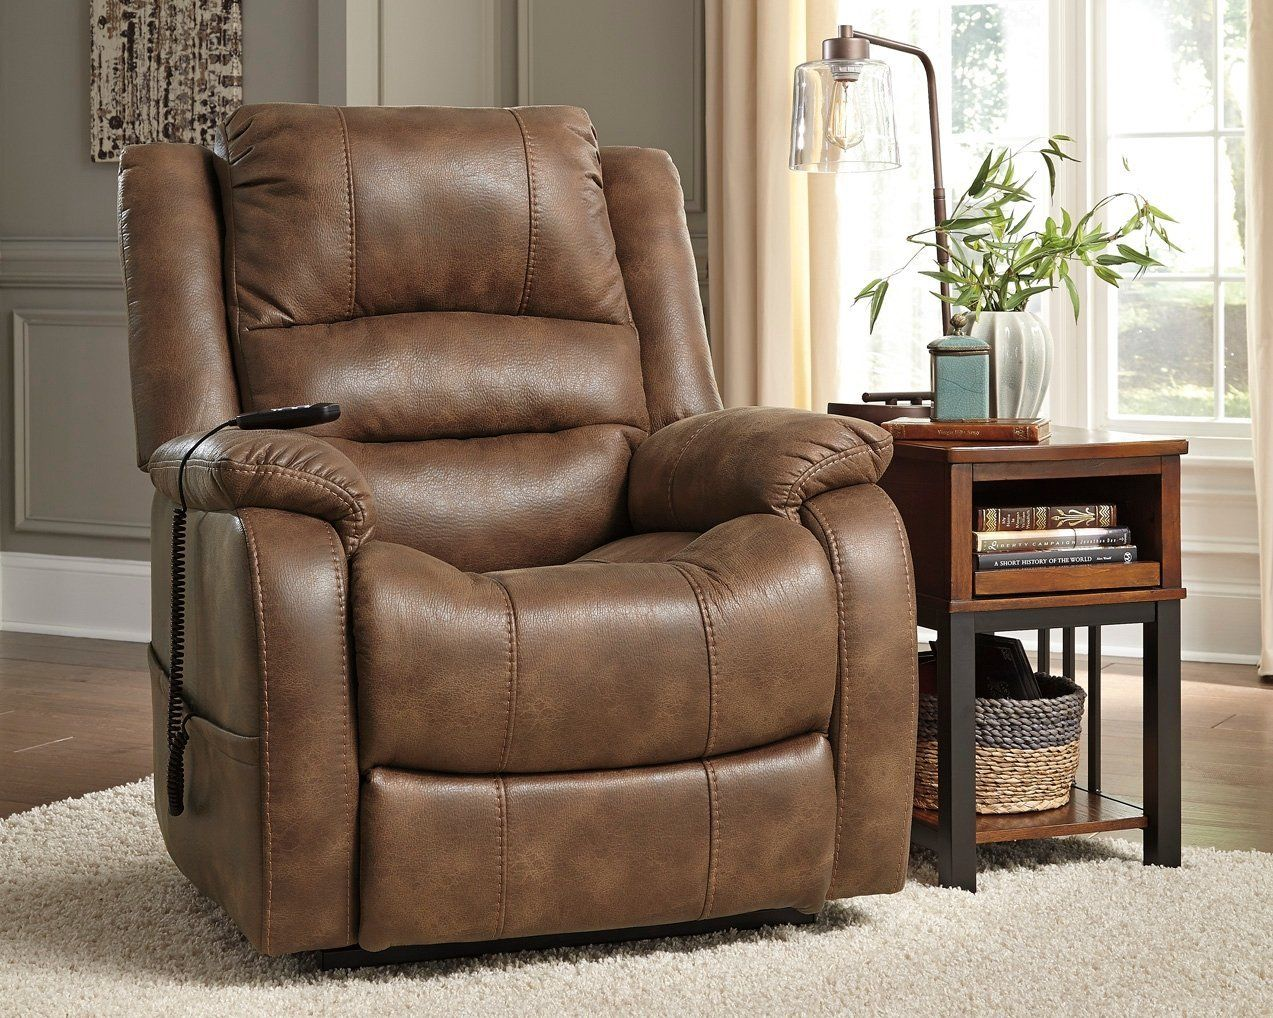 Top 10 Most Comfortable Sofas in 2020 Reviews Lift chair